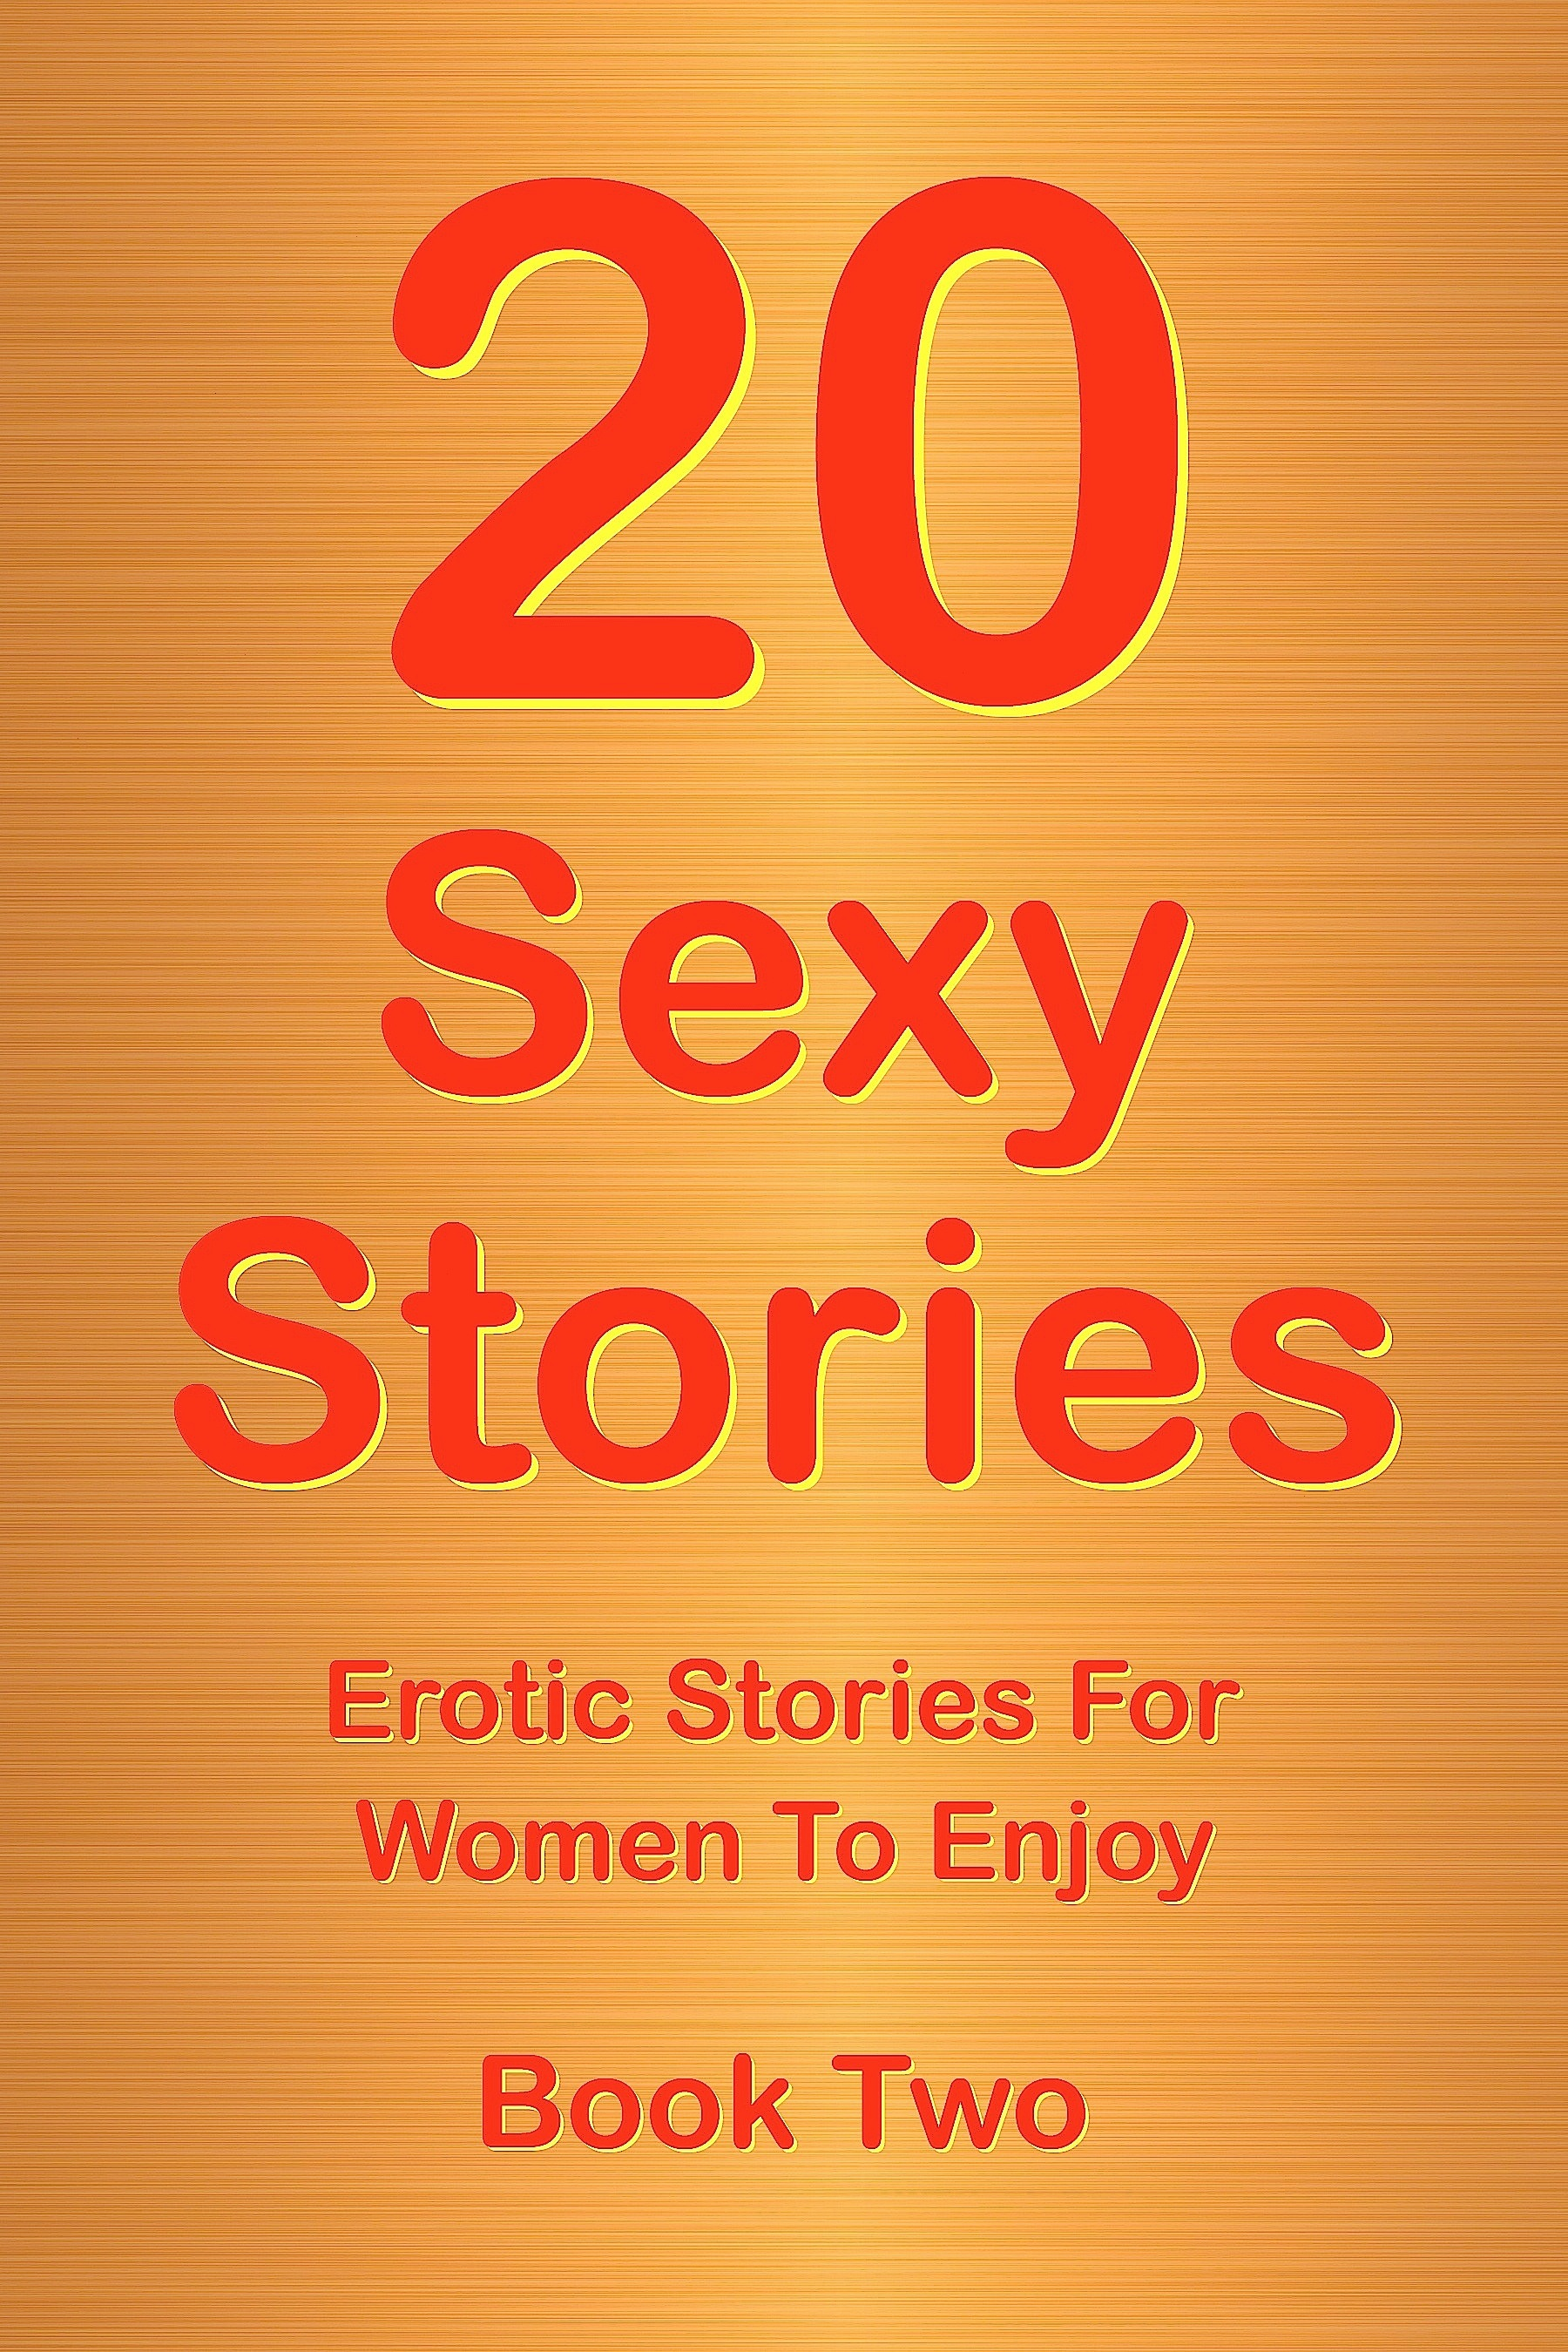 20 Sexy Stories Romantic Erotic Stories For Women Book Two